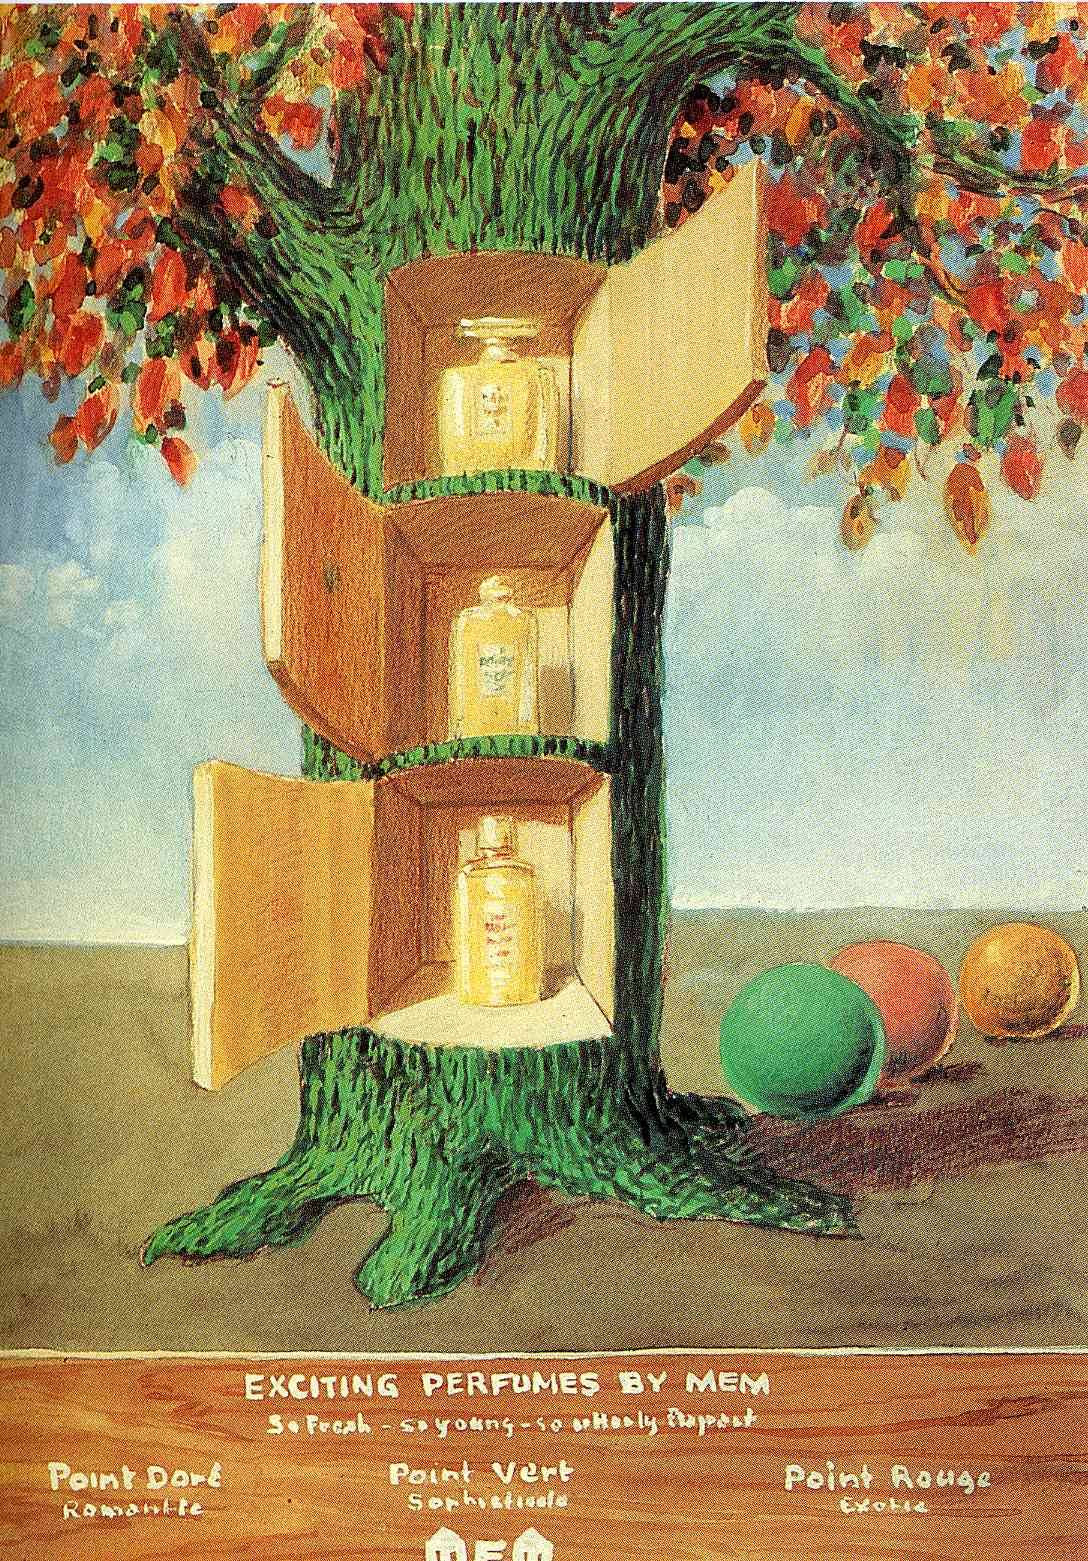 Poster - Exciting perfumes by Mem, 1946 Rene Magritte